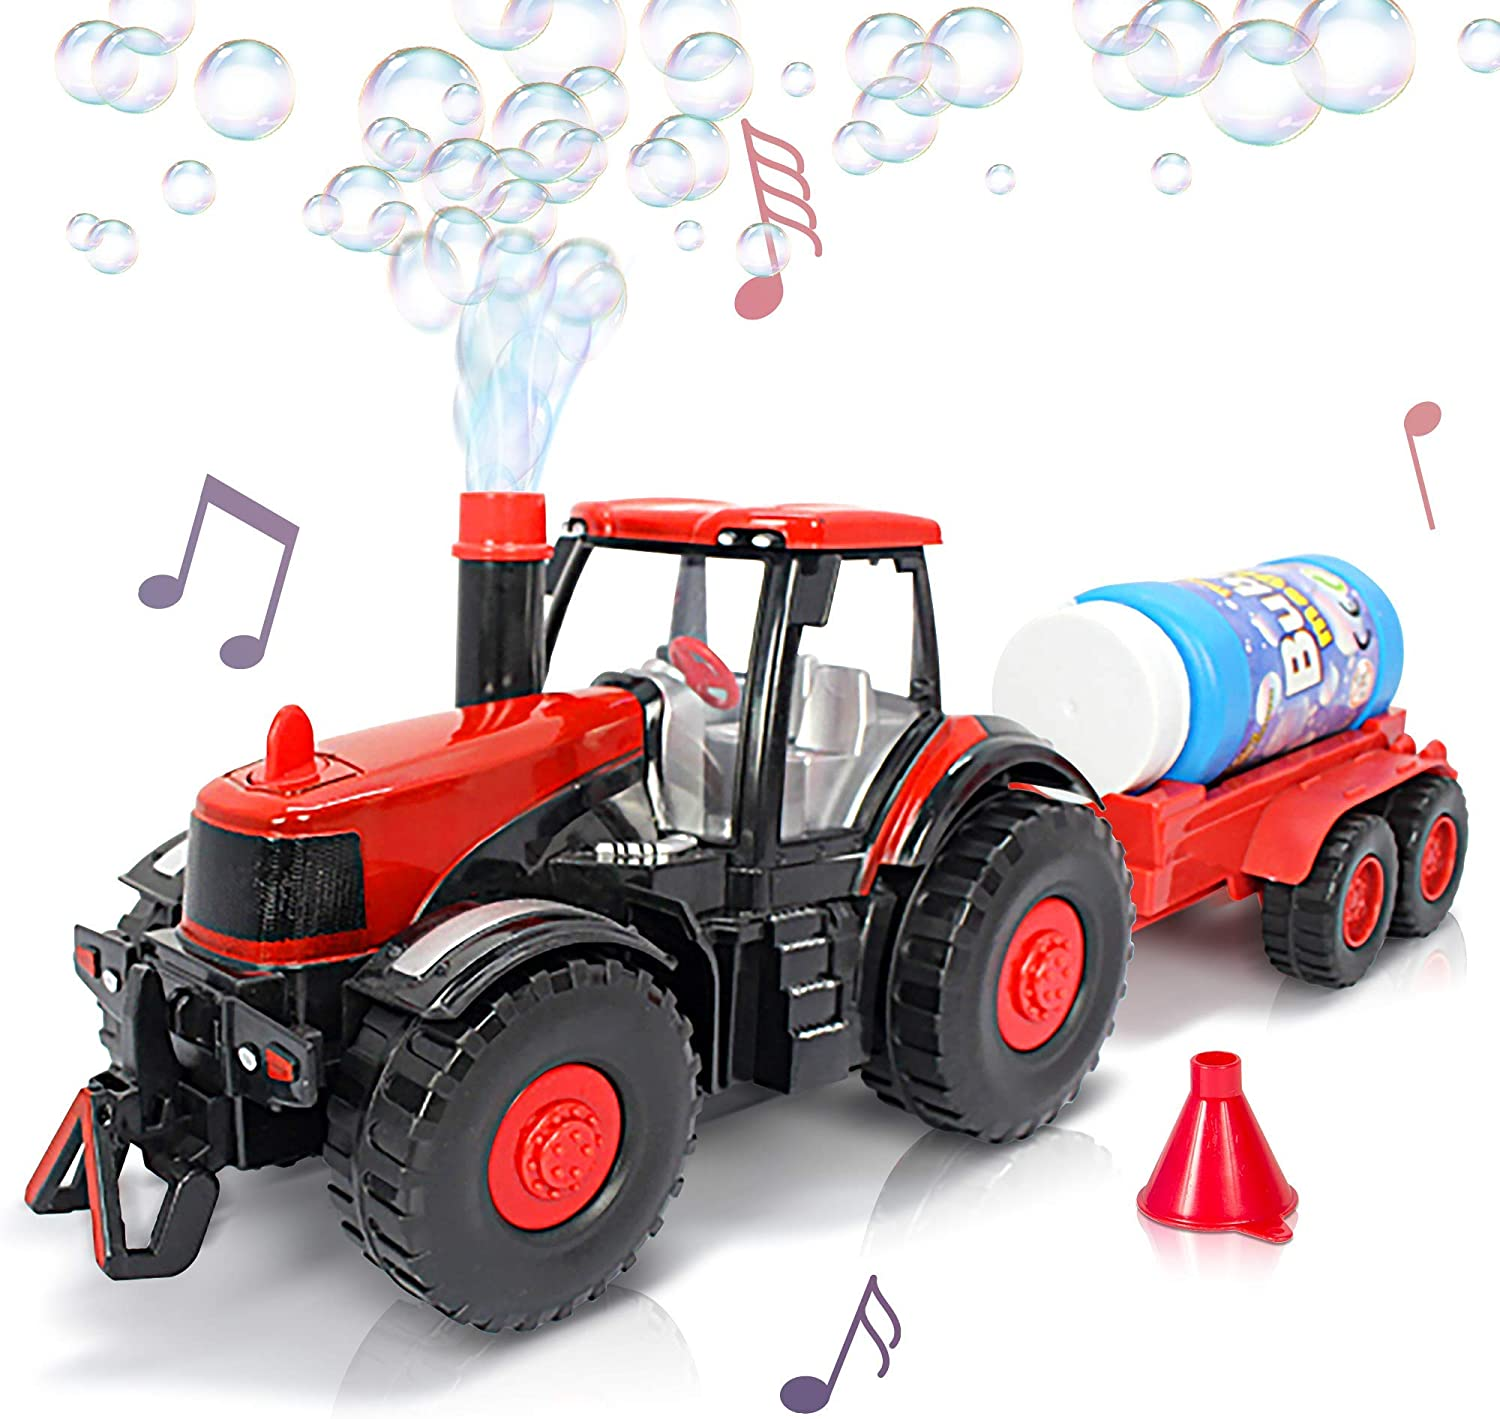 ArtCreativity Bubble Blowing Farm Tractor with Lights and Sound - Main Tractor, Funnel, and Bubble Solution Bottle Included - Battery-Operated Farm Tractor - Batteries not Included - Best for Ages 3+